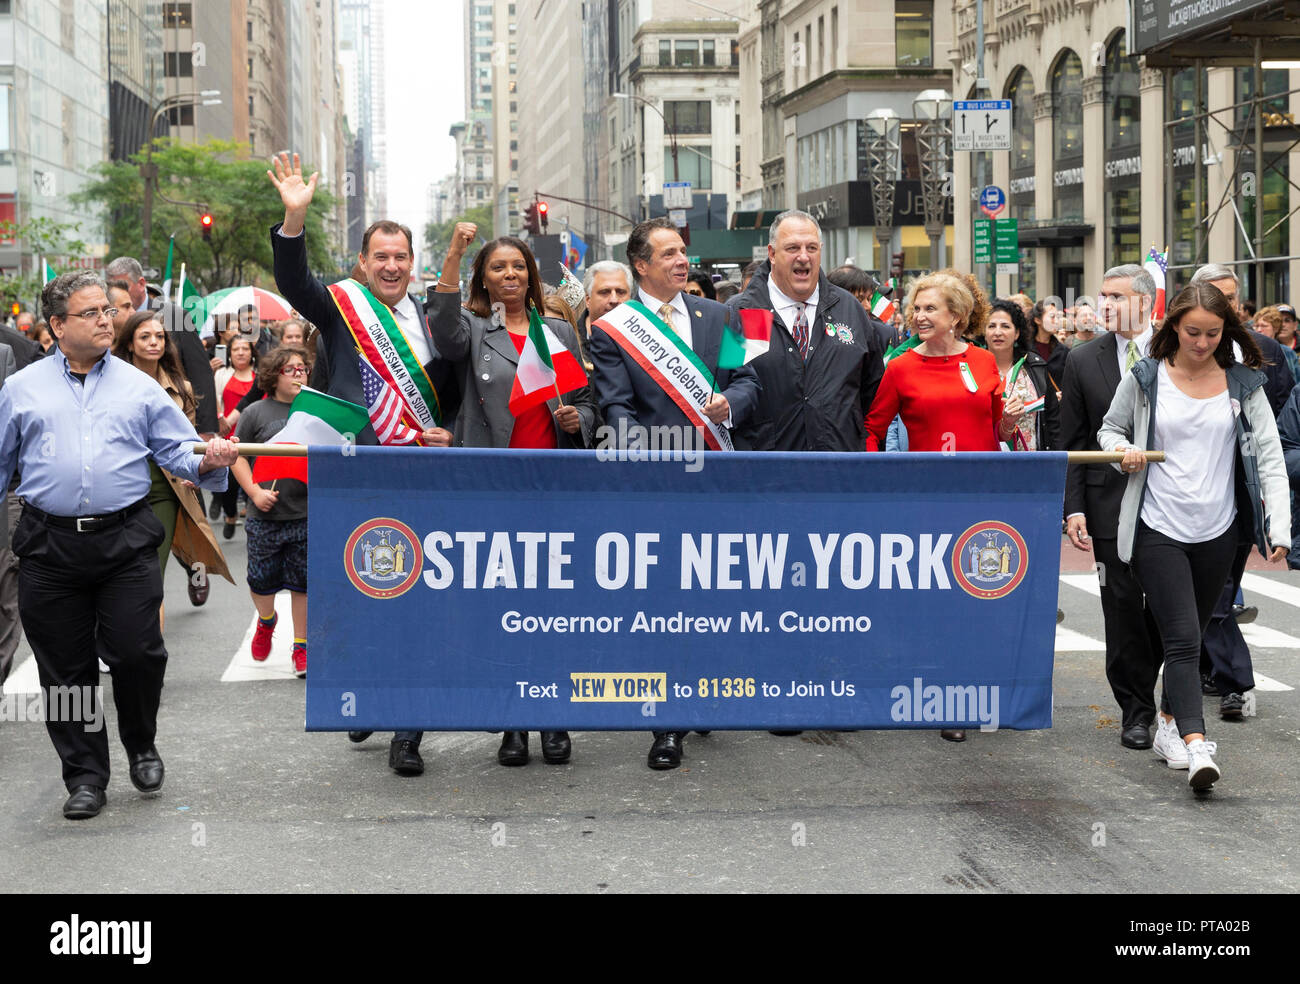 New York, USA - October 8, 2018: Congressman Tom Suozzi, Public advocate Letitia James, Governor Andrew Cuomo, Gary LaBarbera, Congresswoman Carolyn Maloney attend Columbus Day parade along Fifth Avenue in Manhattan Credit: lev radin/Alamy Live News Stock Photo